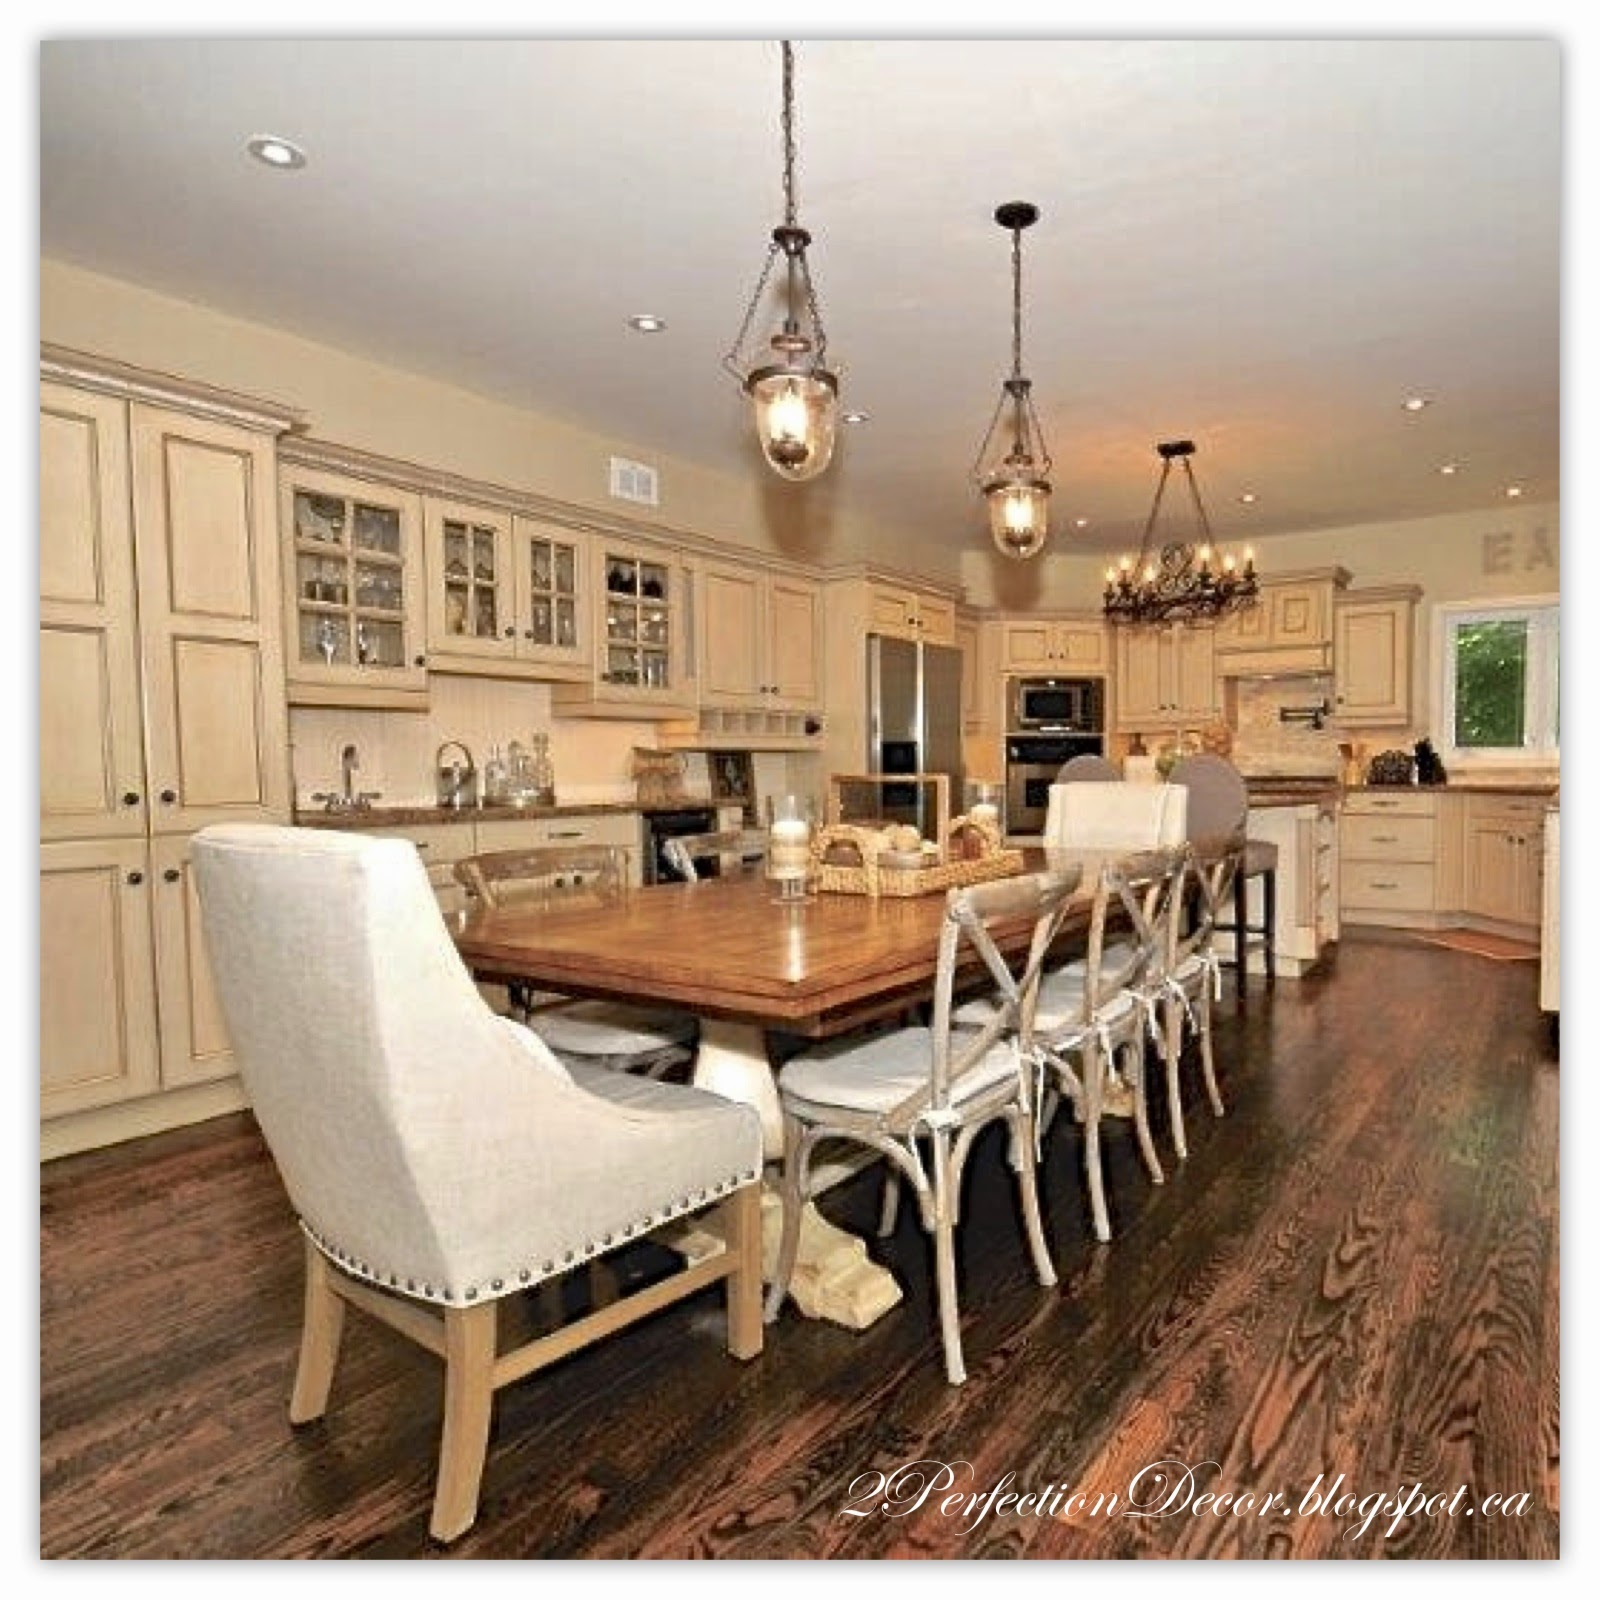 2Perfection Decor: French Country Kitchen Reveal